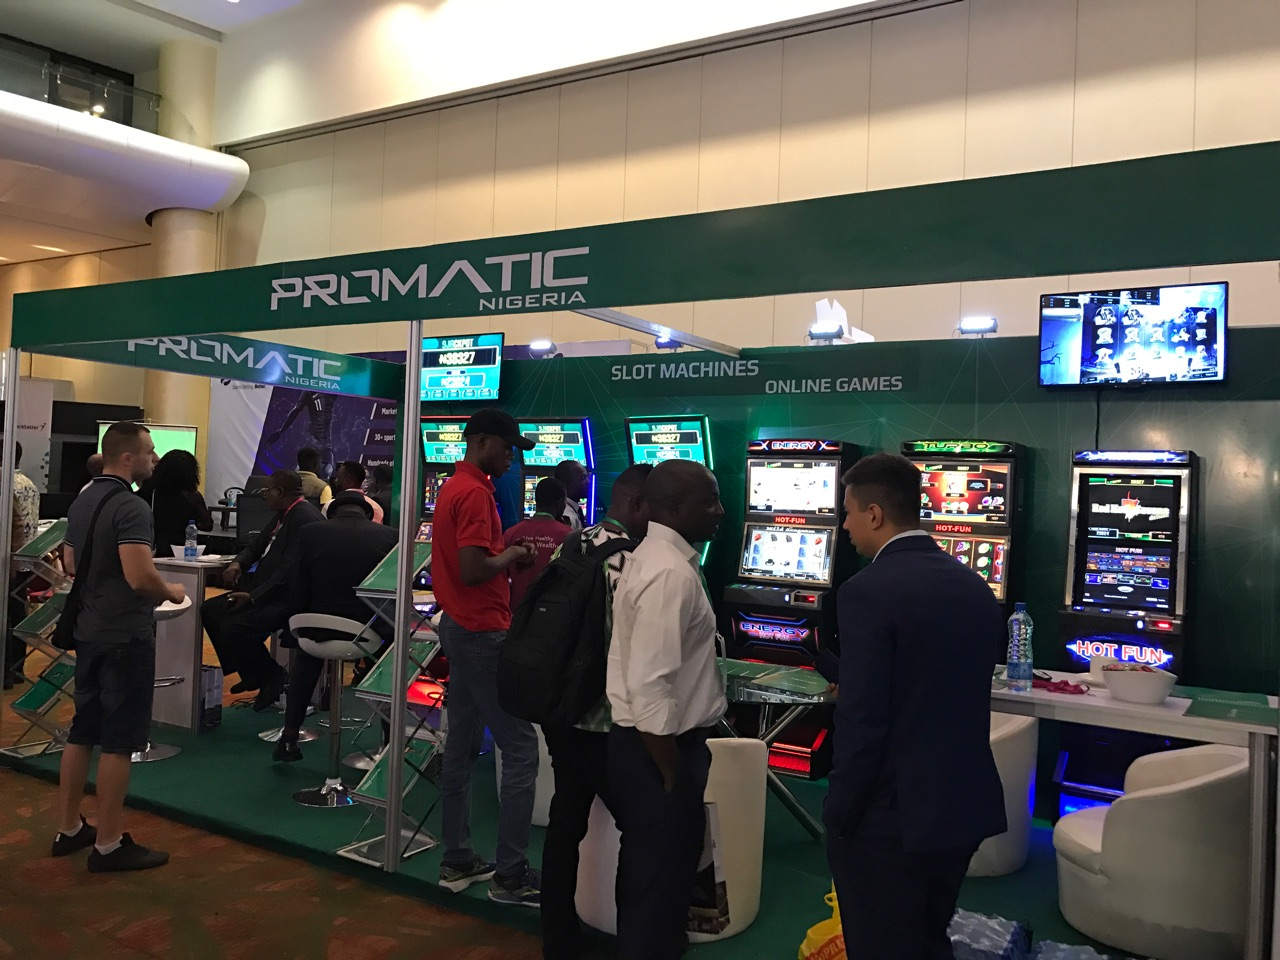 Sports Betting West Africa Summit 15